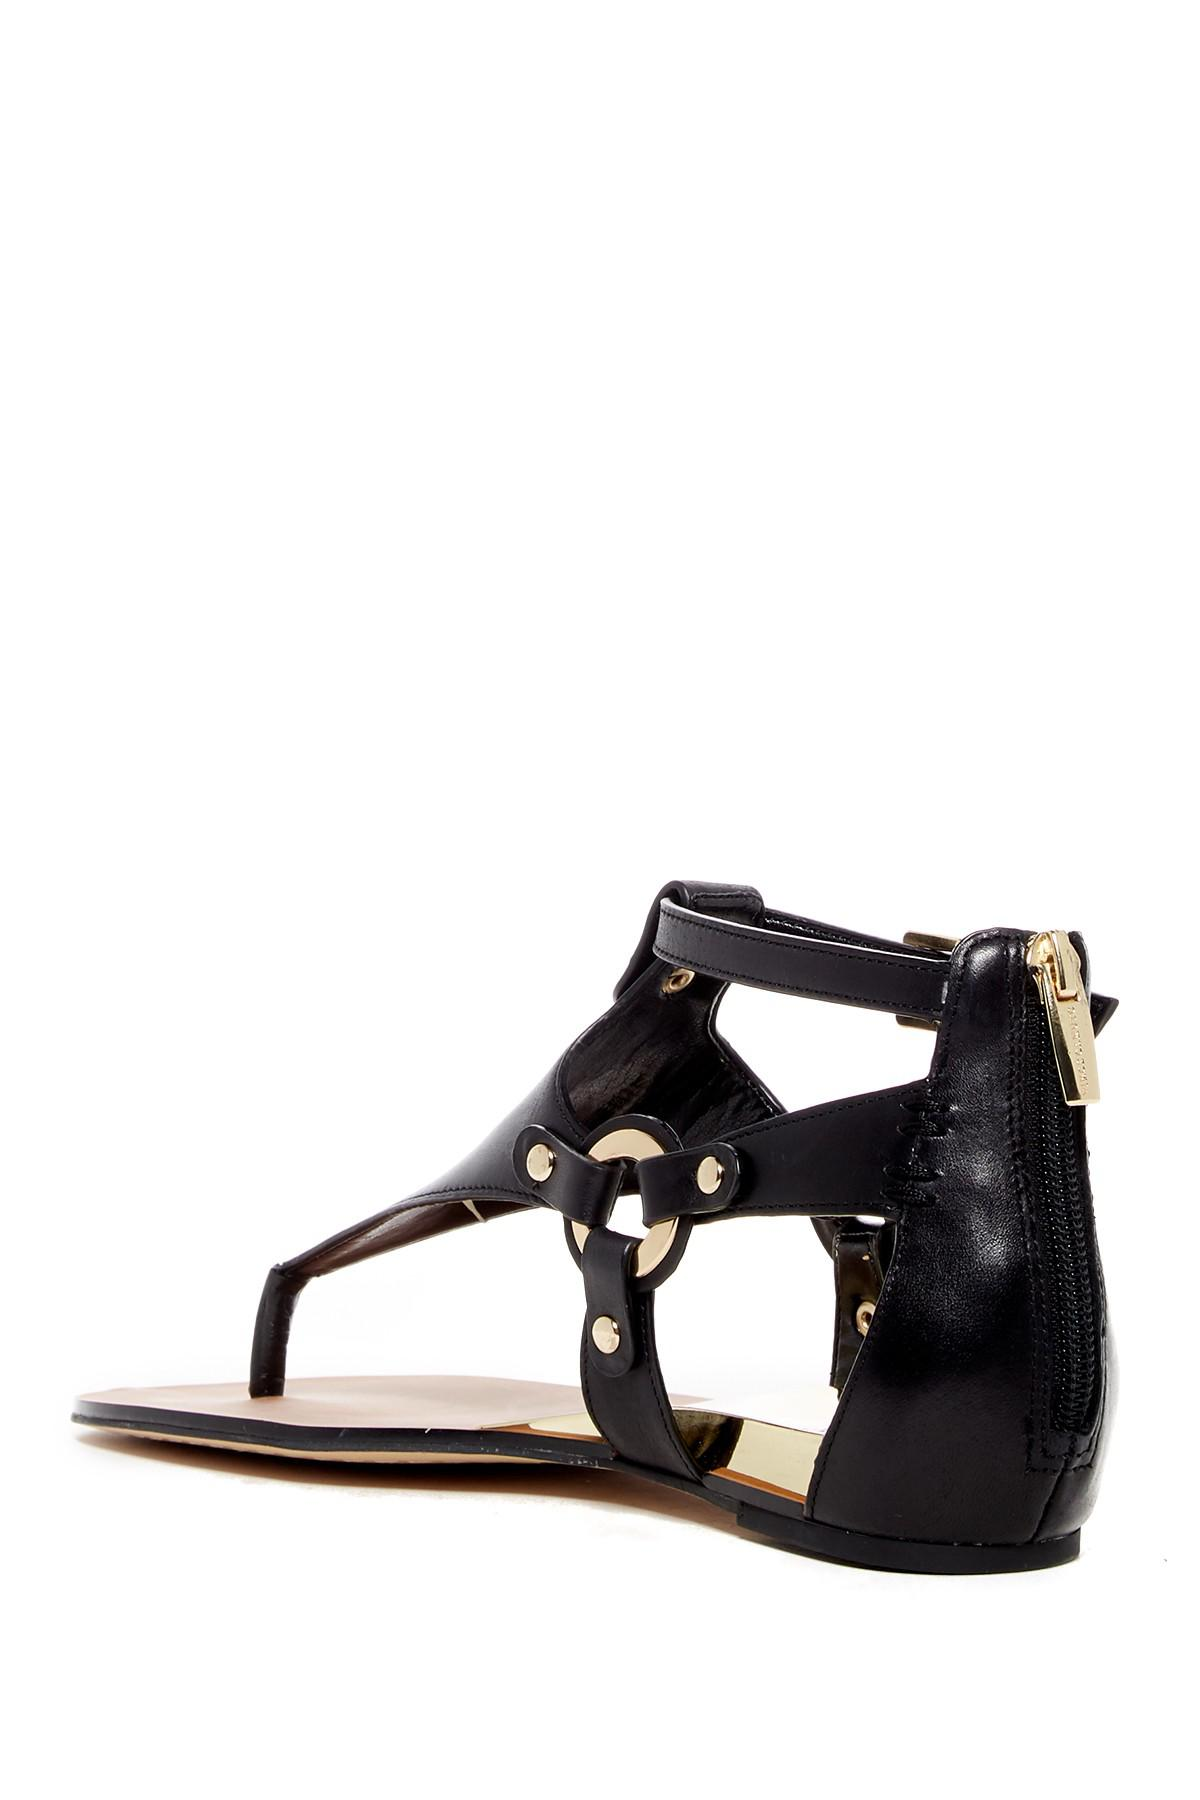 5db90d88d0a Lyst - Vince Camuto Averie Wedge Sandal in Black